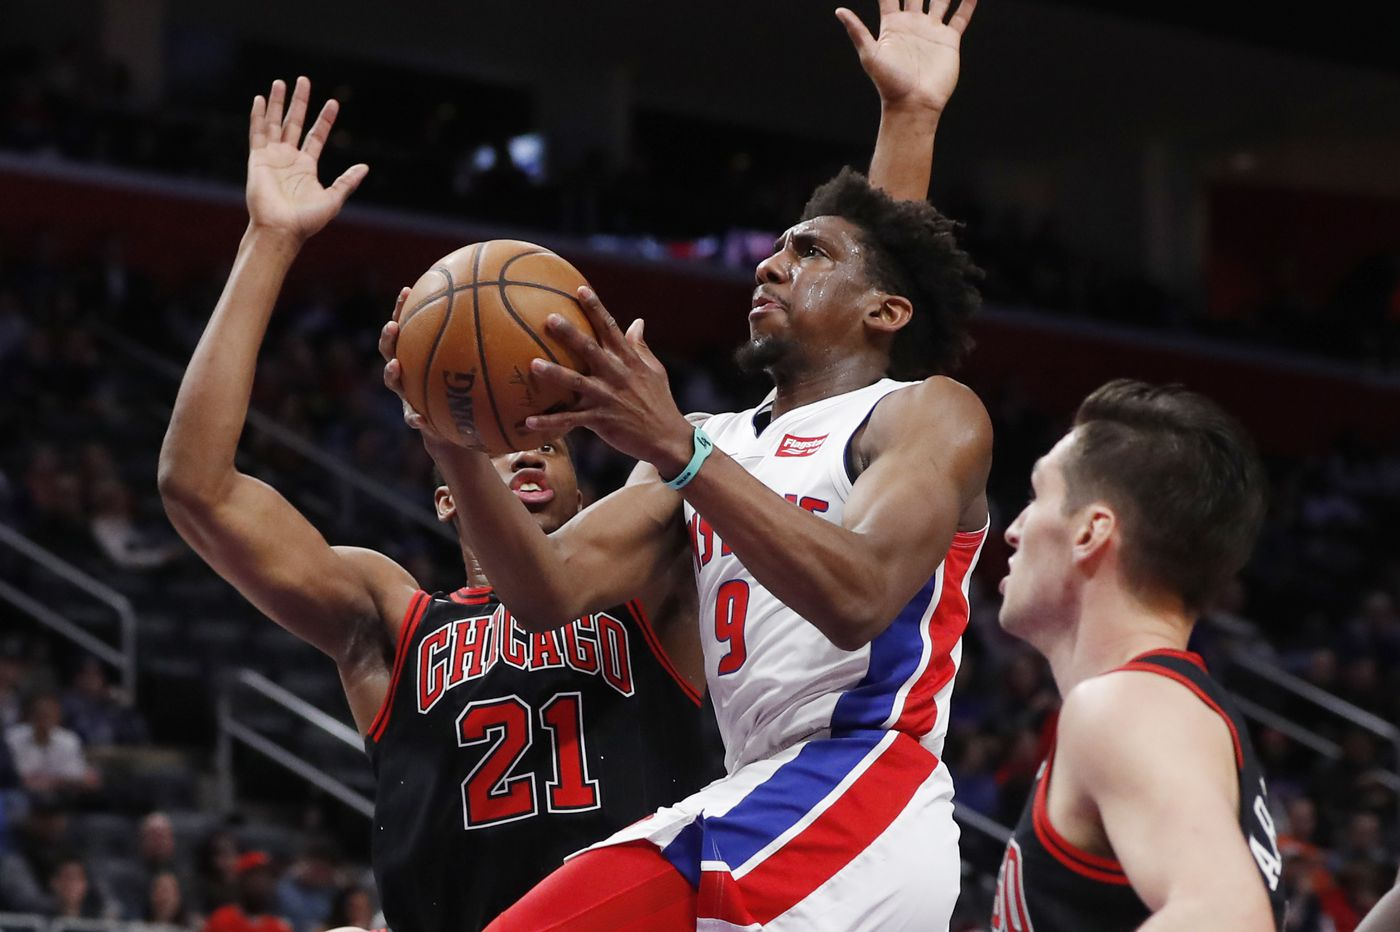 Sources: Sixers have interest in Pistons' Luke Kennard and Langston Galloway and free agent Jeff Green